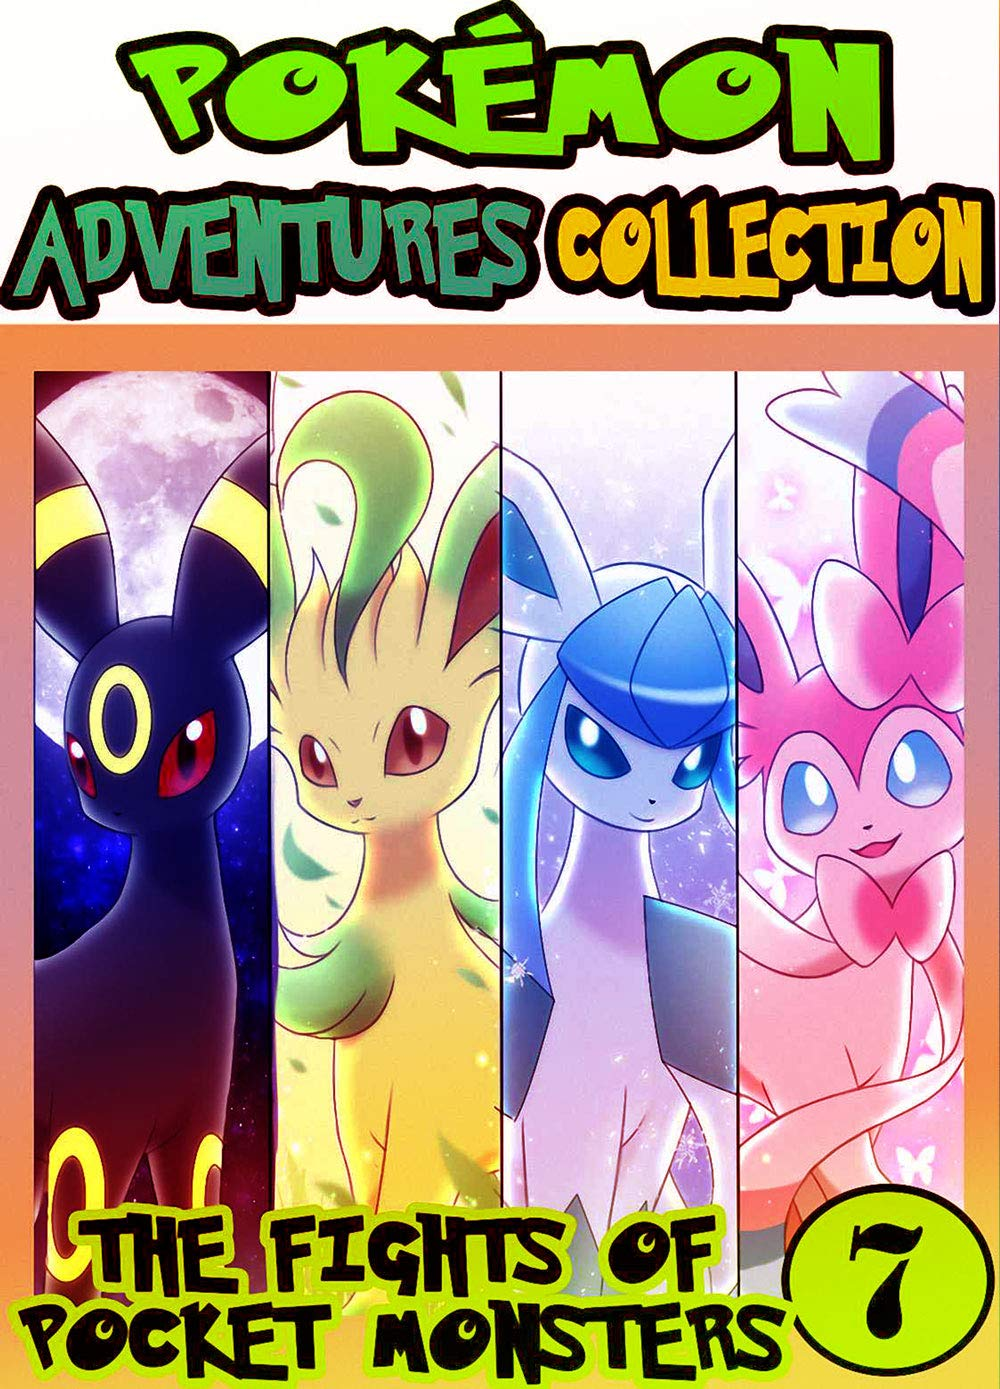 Fight Adventures Pocket: Collection Pack 7 - Adventures Of Pocket Monsters Manga Pokemon Graphic Novel For Children